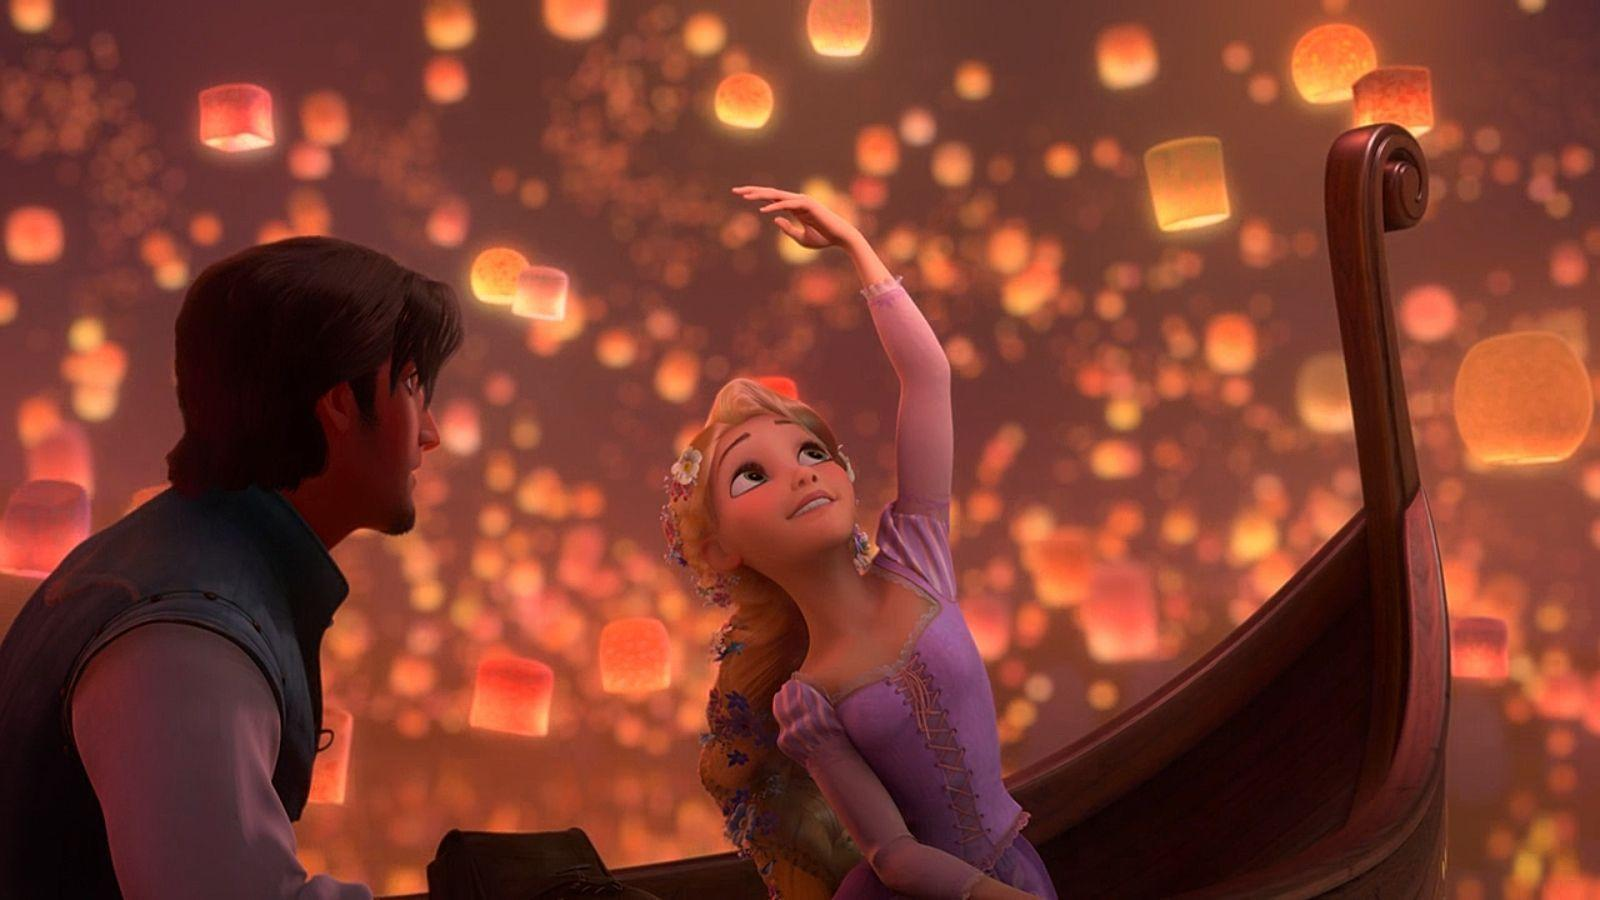 Tangled wallpapers wallpaper cave - Tangled wallpaper ...